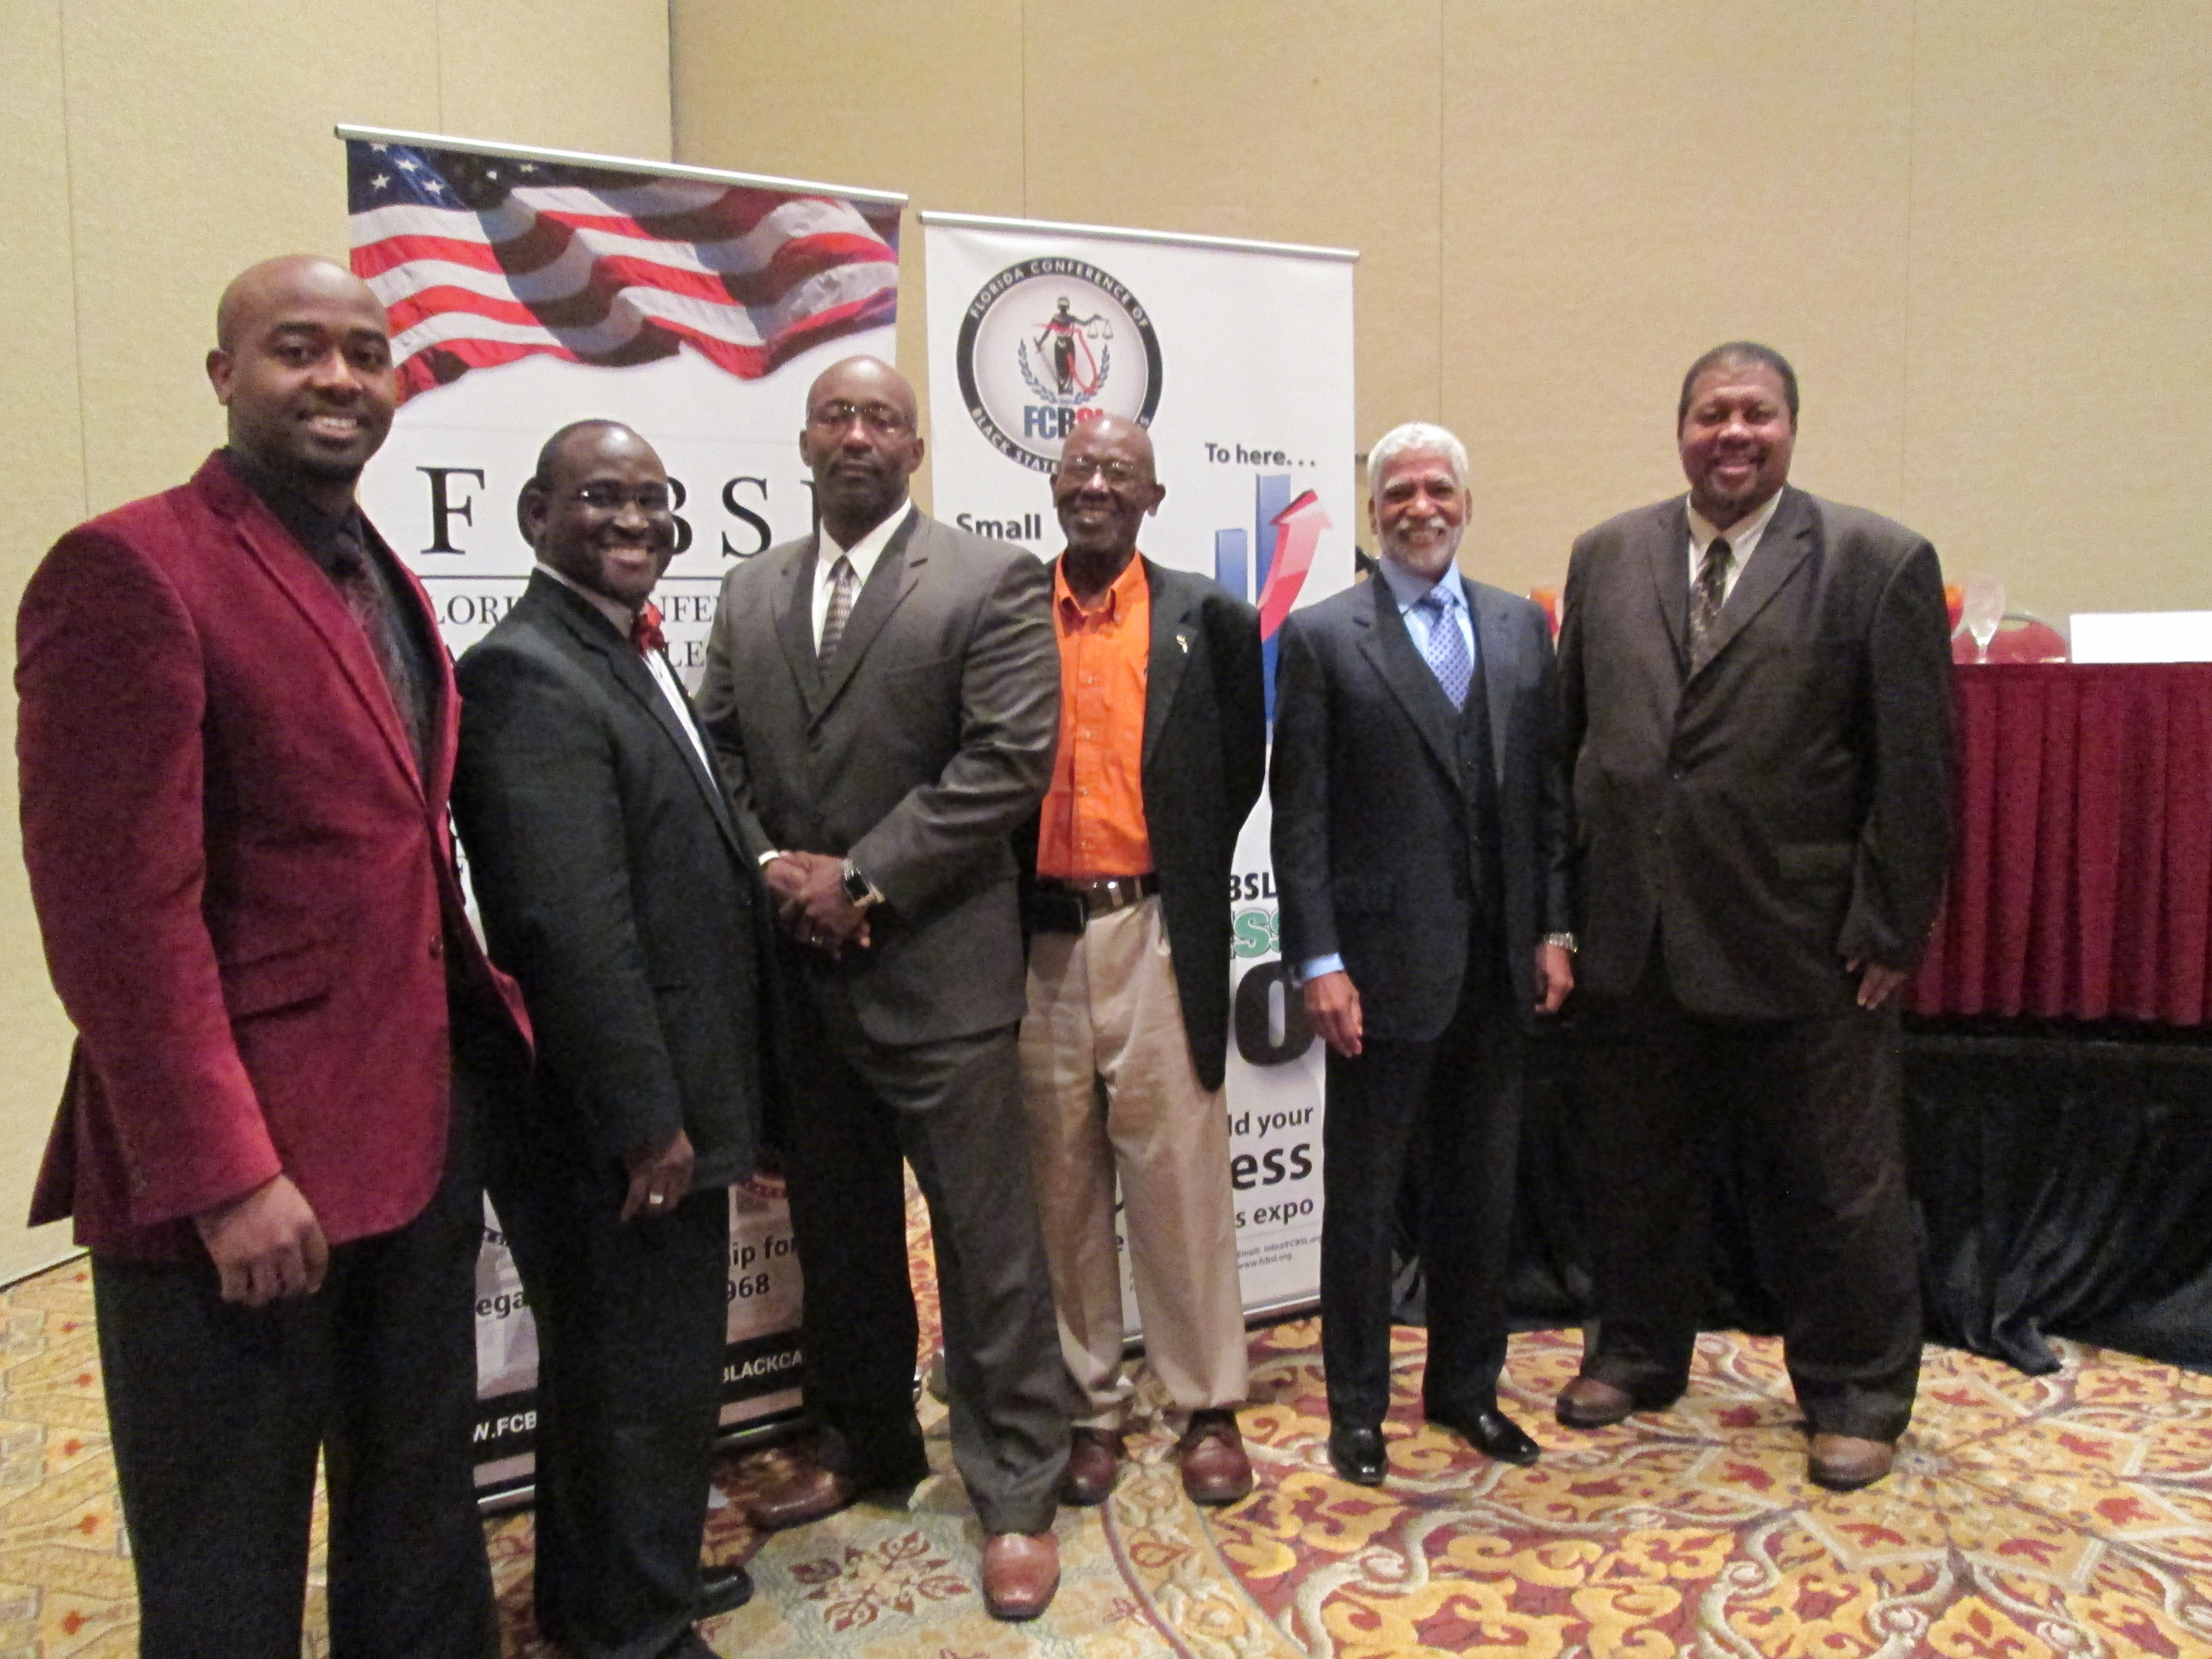 Meeting with the Florida Black Caucus-A few good men